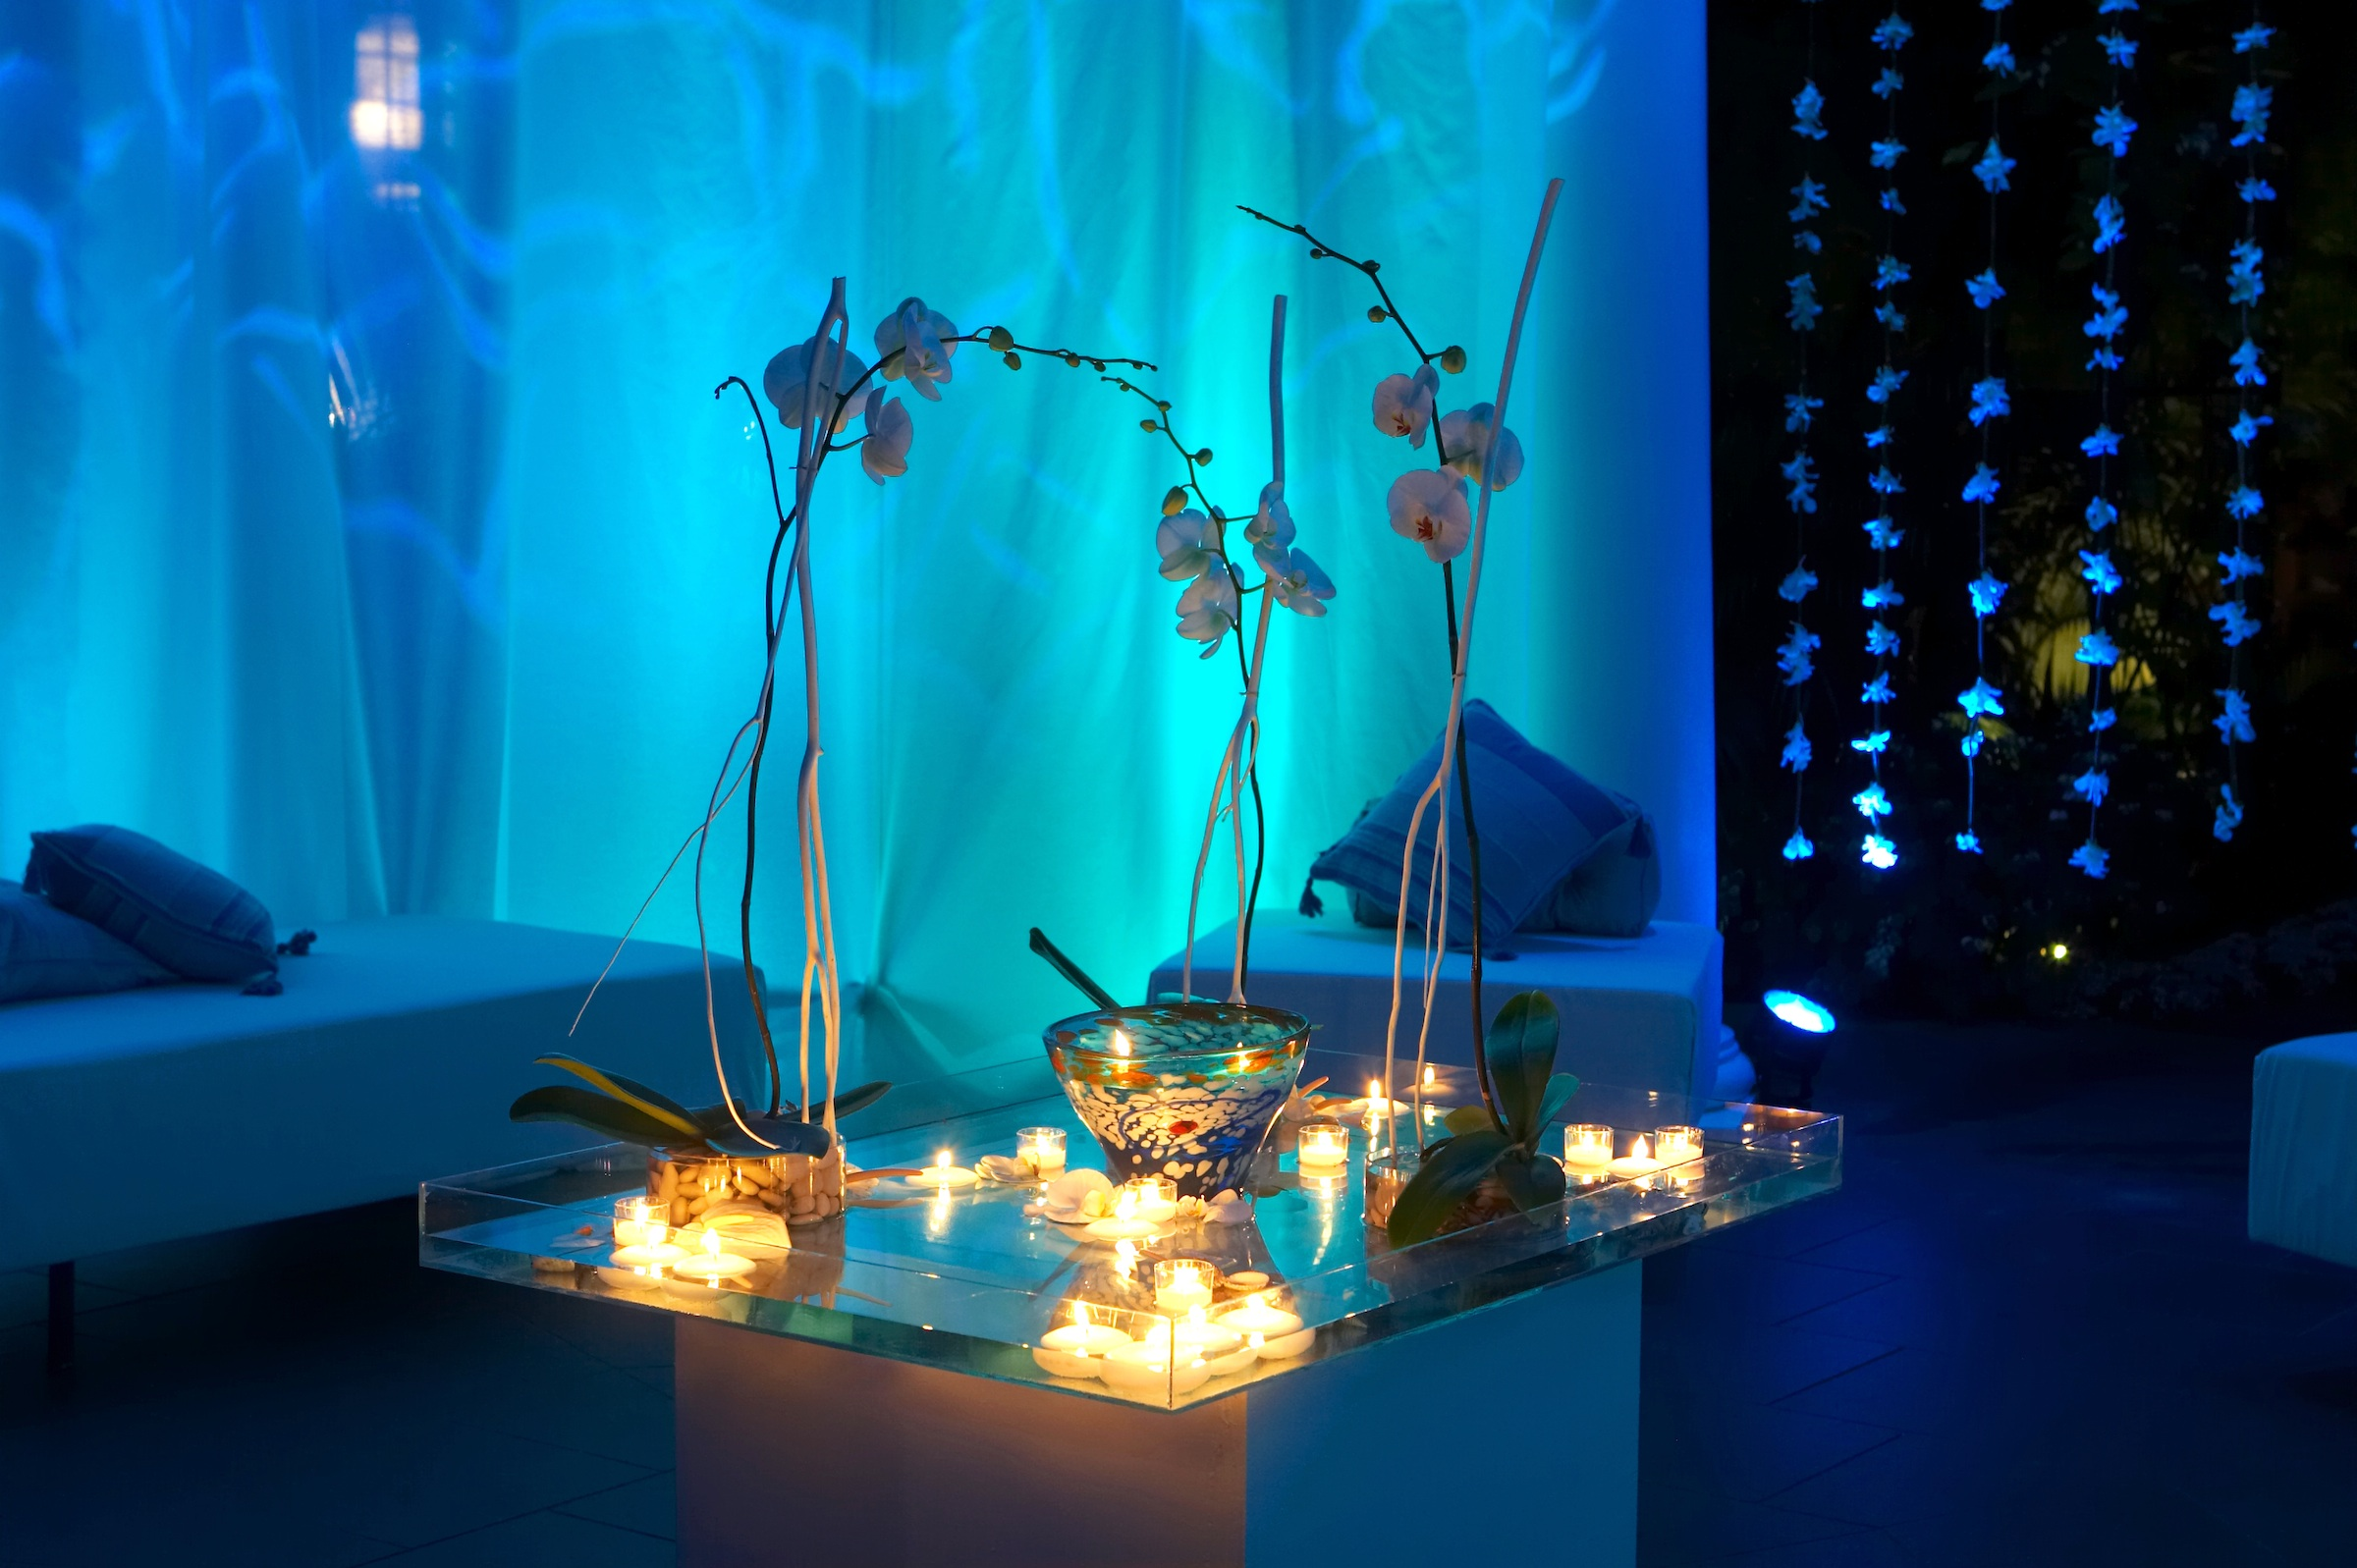 Wedding-details-reception-decor-inspiration-by-jerri-woolworth-blue-lighting-orchid-centerpieces.original